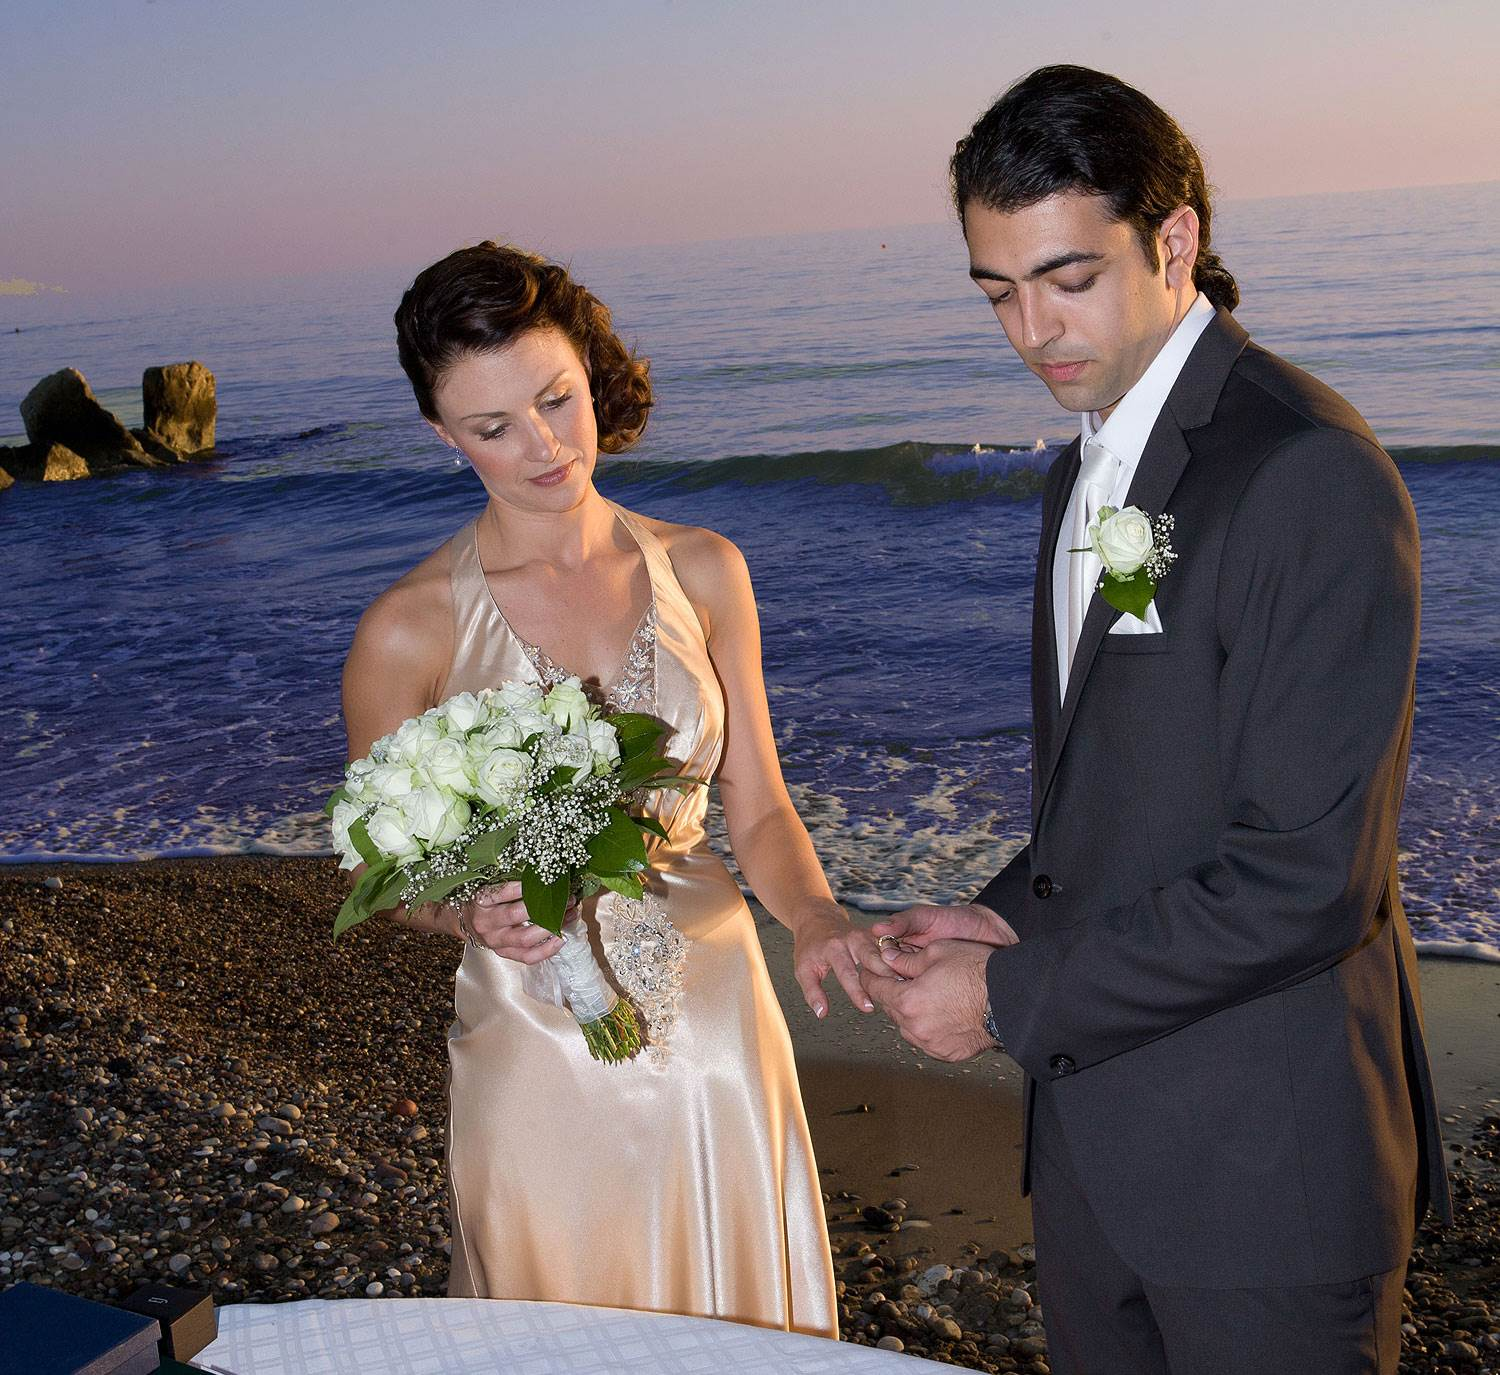 Beach Wedding - Cyprus